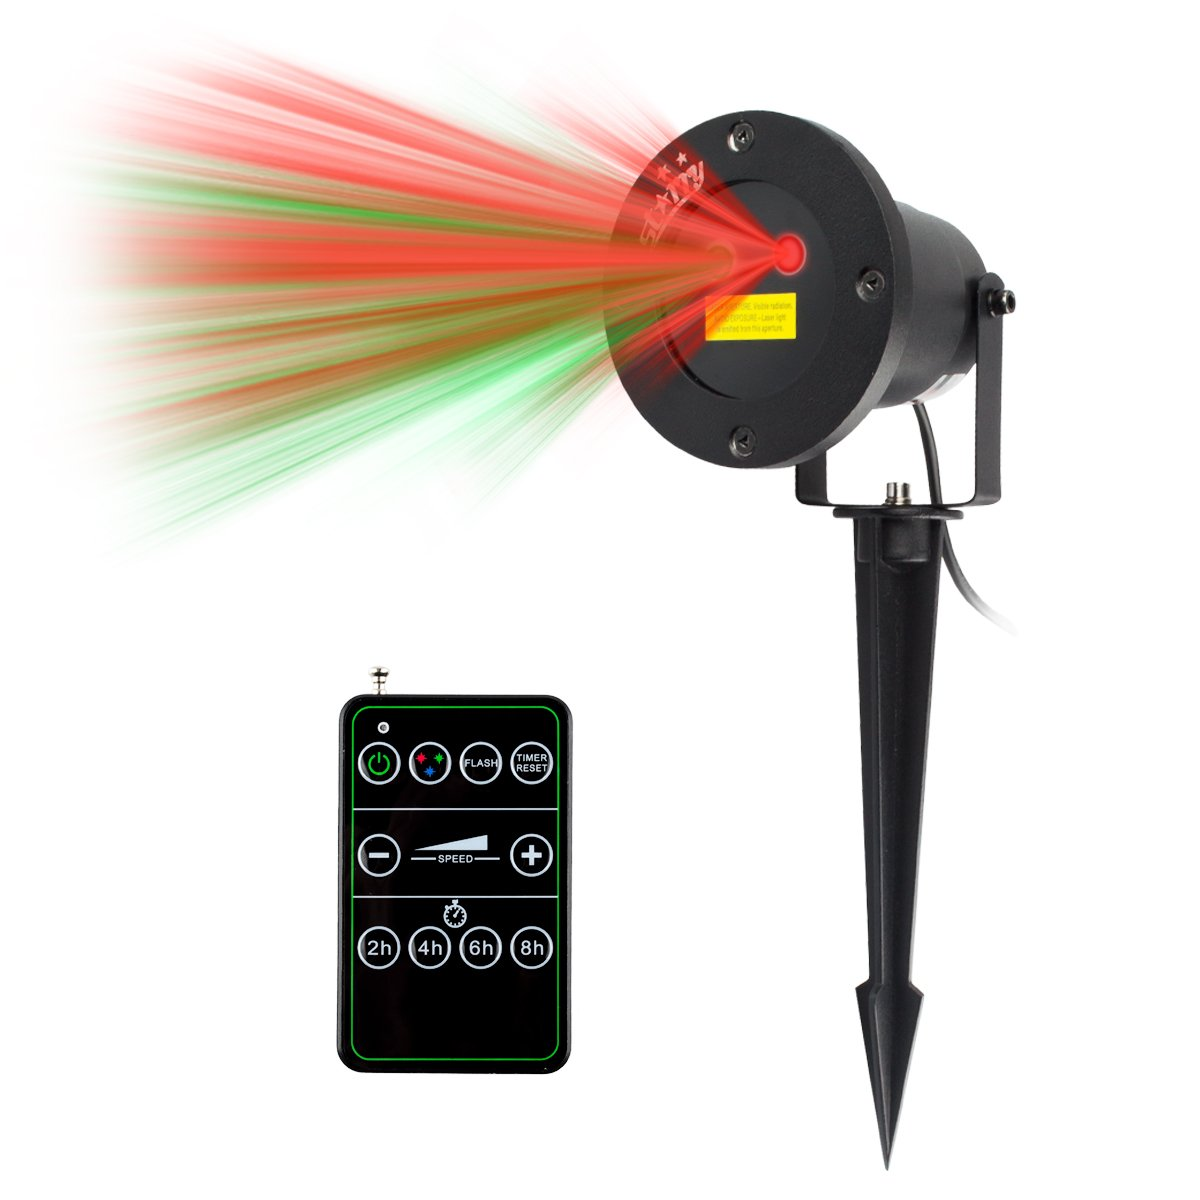 camping Laser lights, LED Projector Aluminum Alloy with IR Wireless Remote for Holiday, Party, Landscape and Garden Decoration, Indoor or Outdoor Use, Black